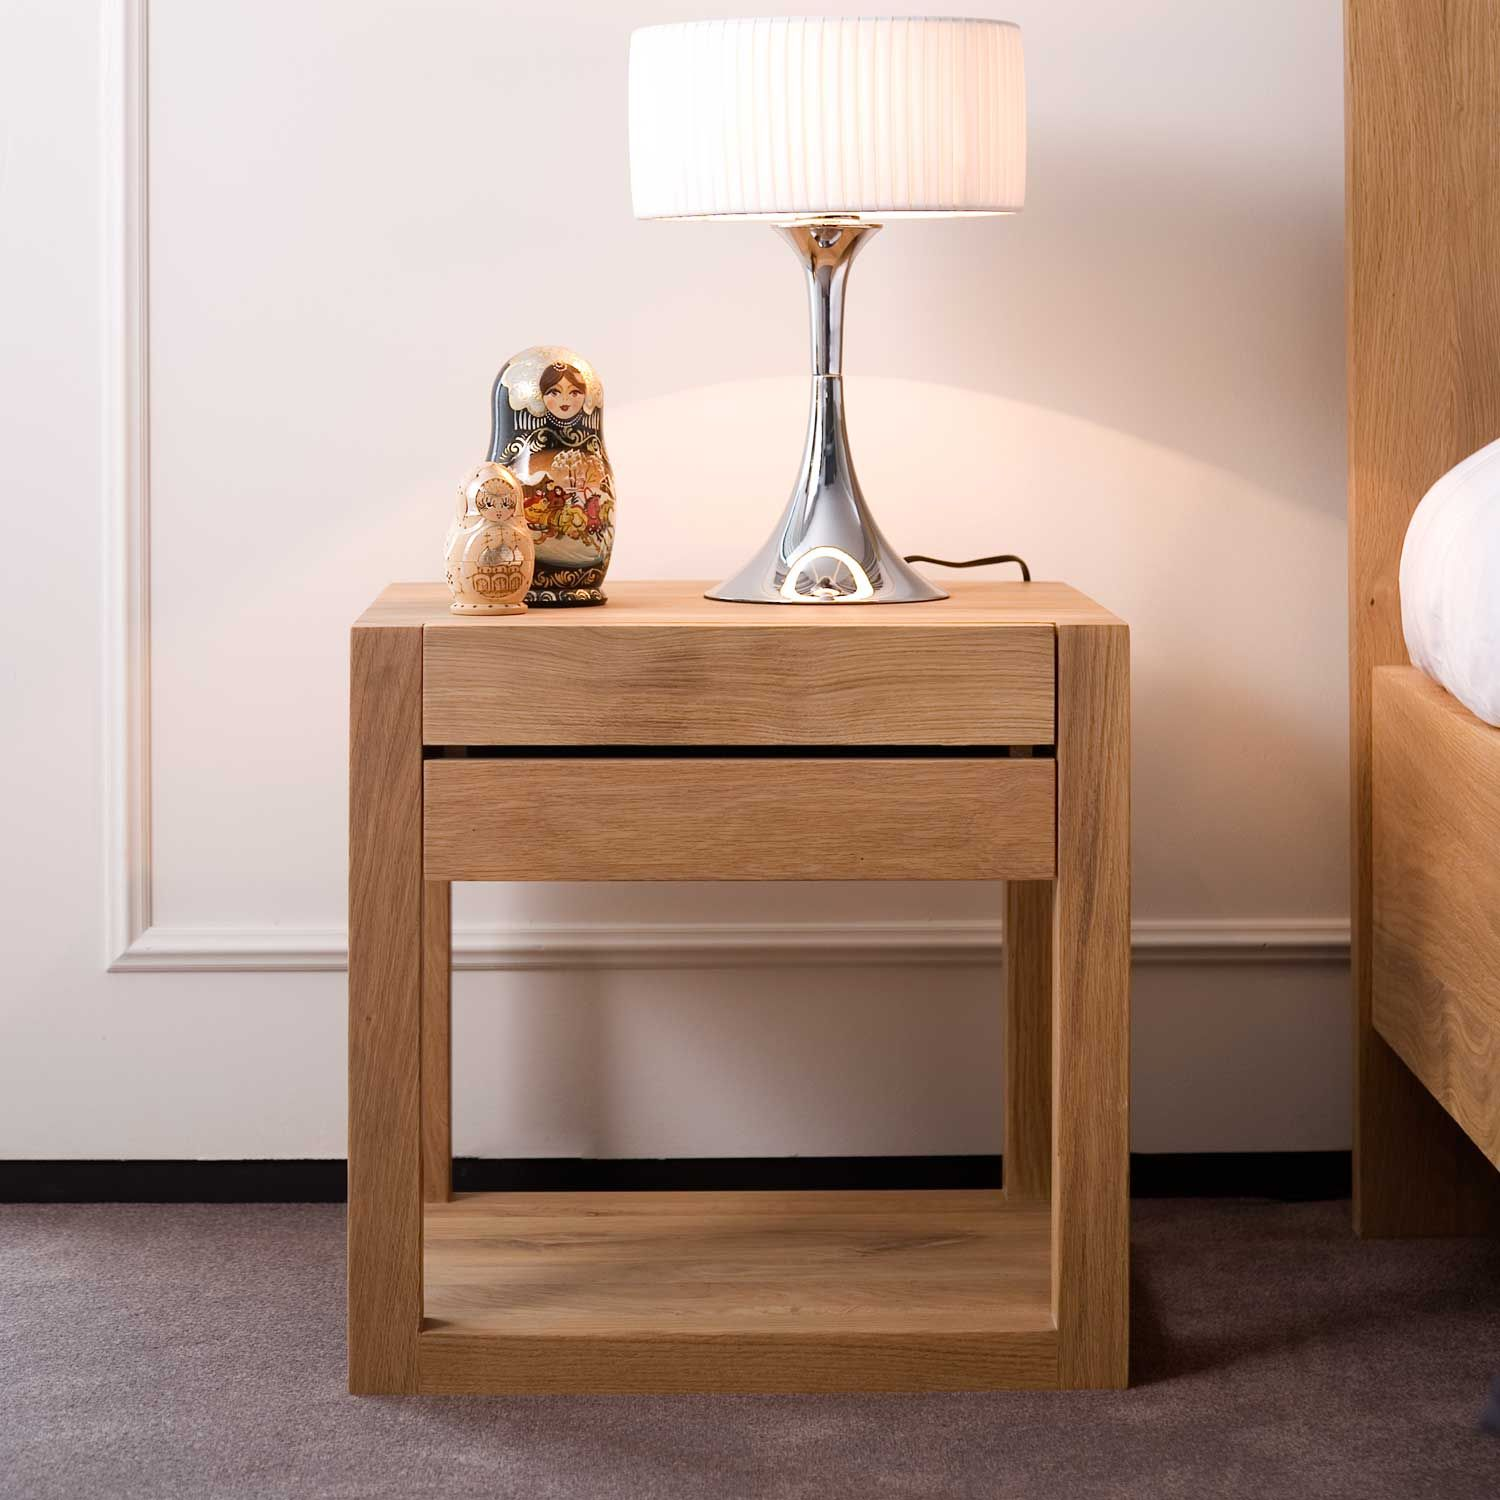 natural polished wooden bed side table with drawer and square legs placed on - Contemporary Oak Bedroom Furniture